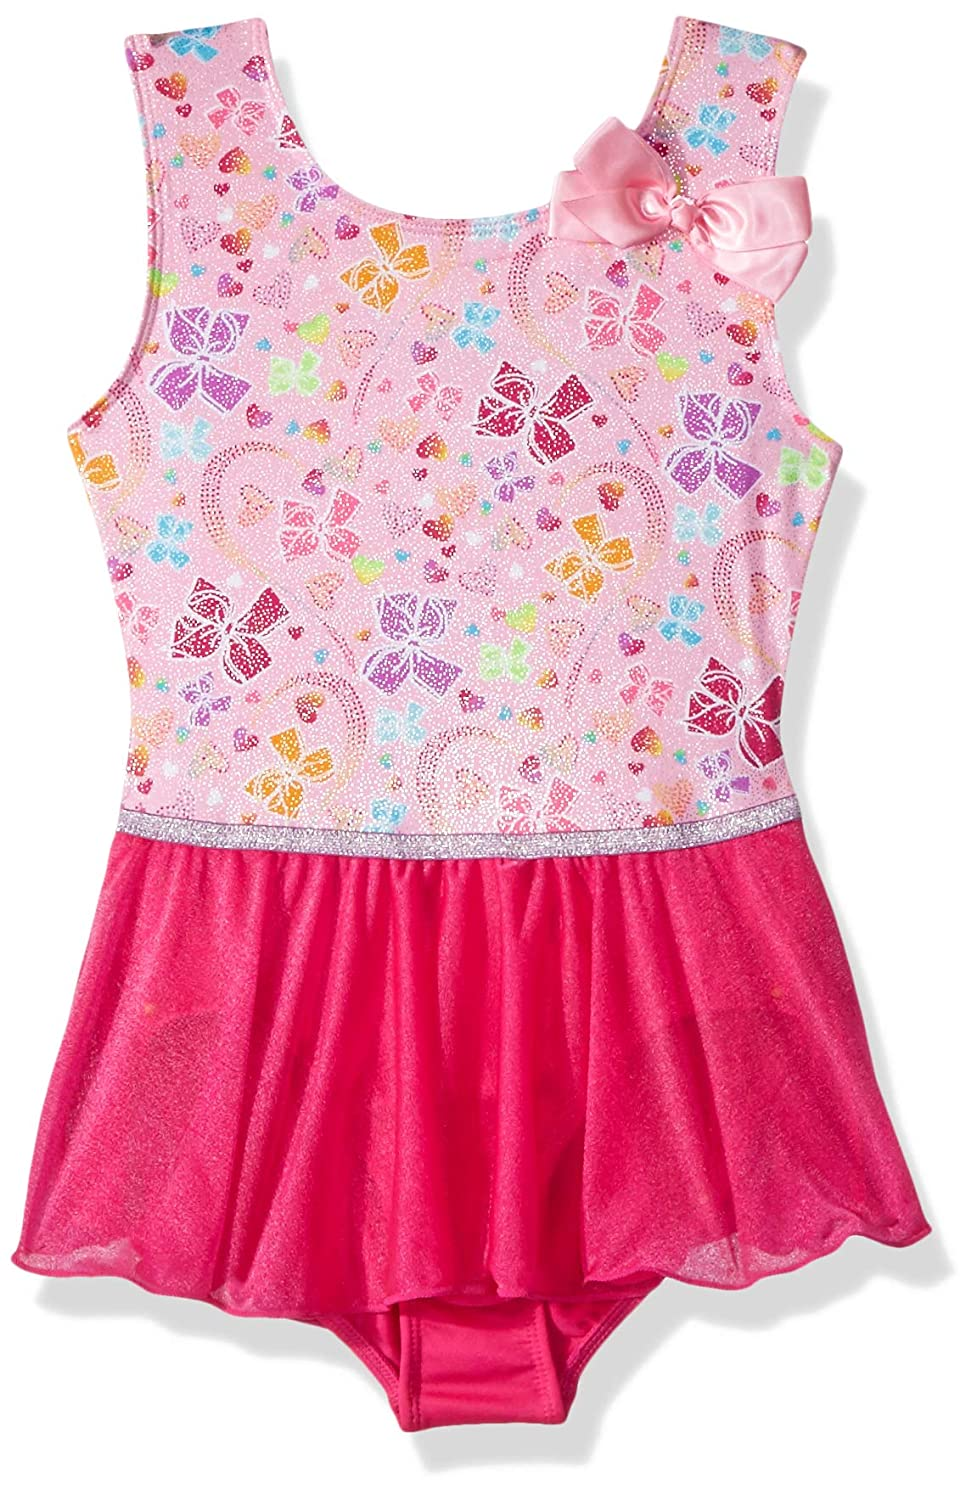 Jojo Siwa By Danskin Girls' Big Rainbow Bows Tank Dance Dress 7785